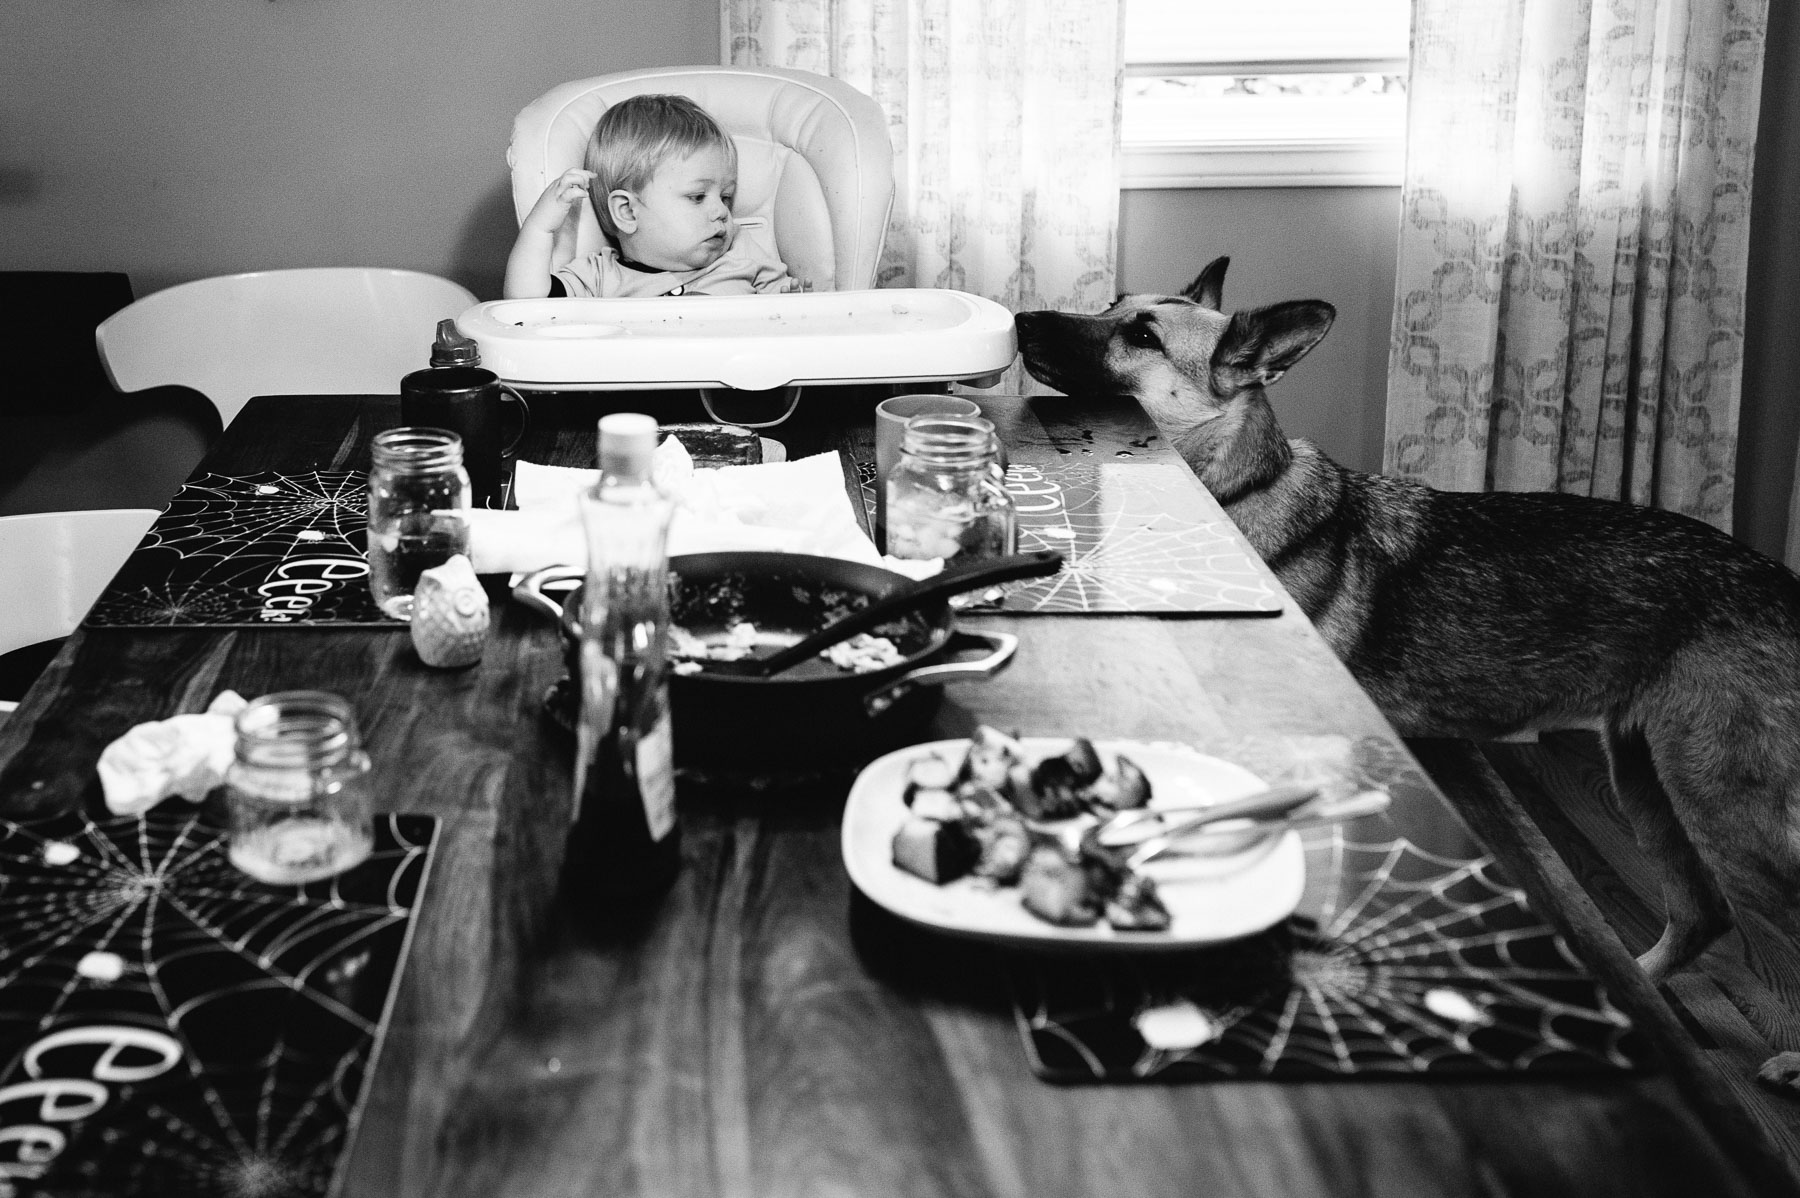 baby boy sitting alone in high chair at dining table with German shepherd dog looking on